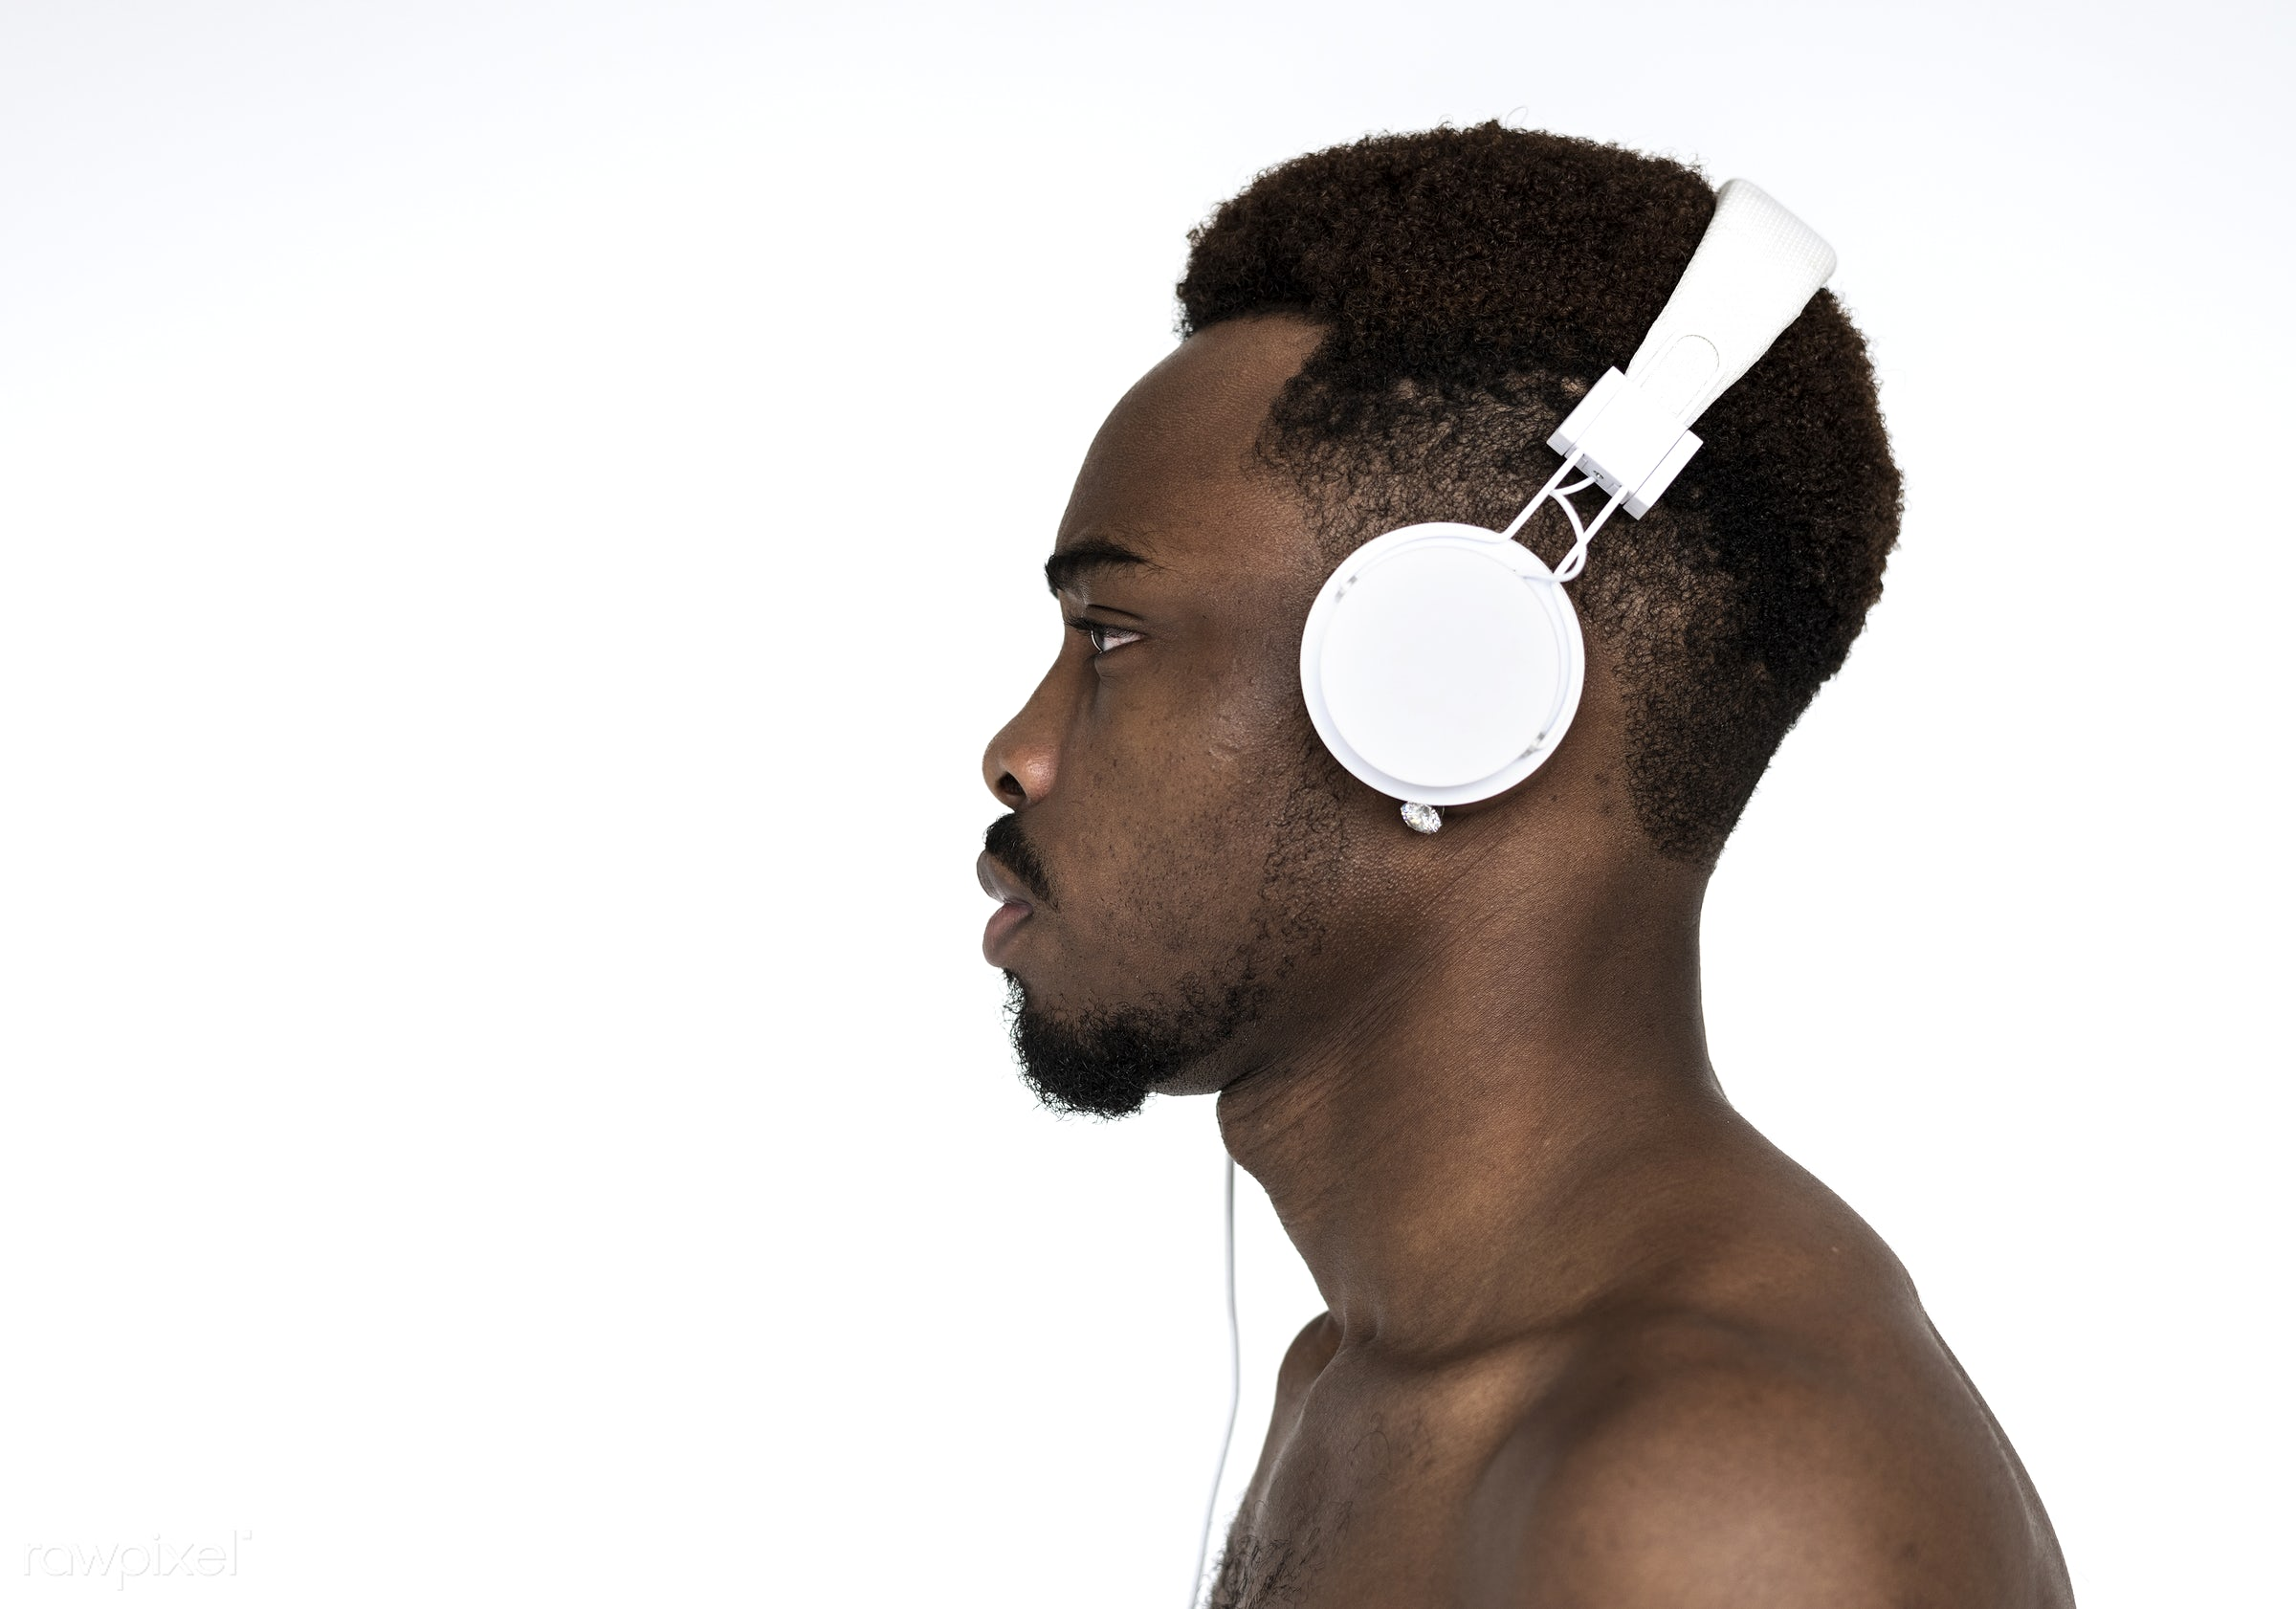 expression, studio, model, person, african, people, race, headphone, style, casual, lifestyle, man, music, isolated, male,...